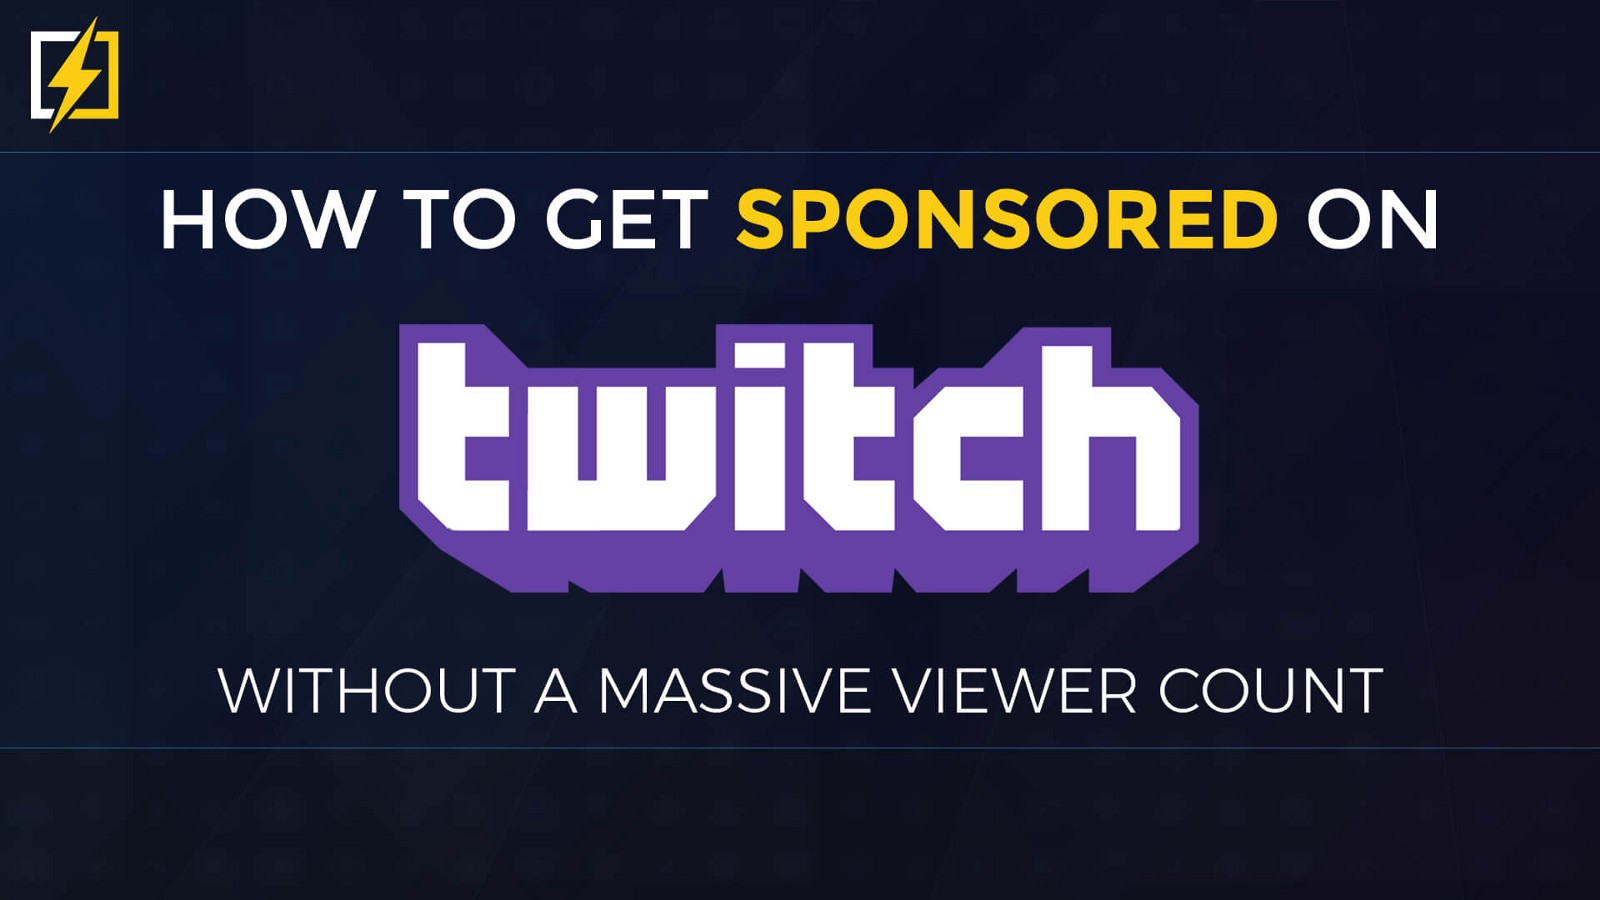 e767a47a8 How To Get Sponsored on Twitch Without A Massive Viewer Count